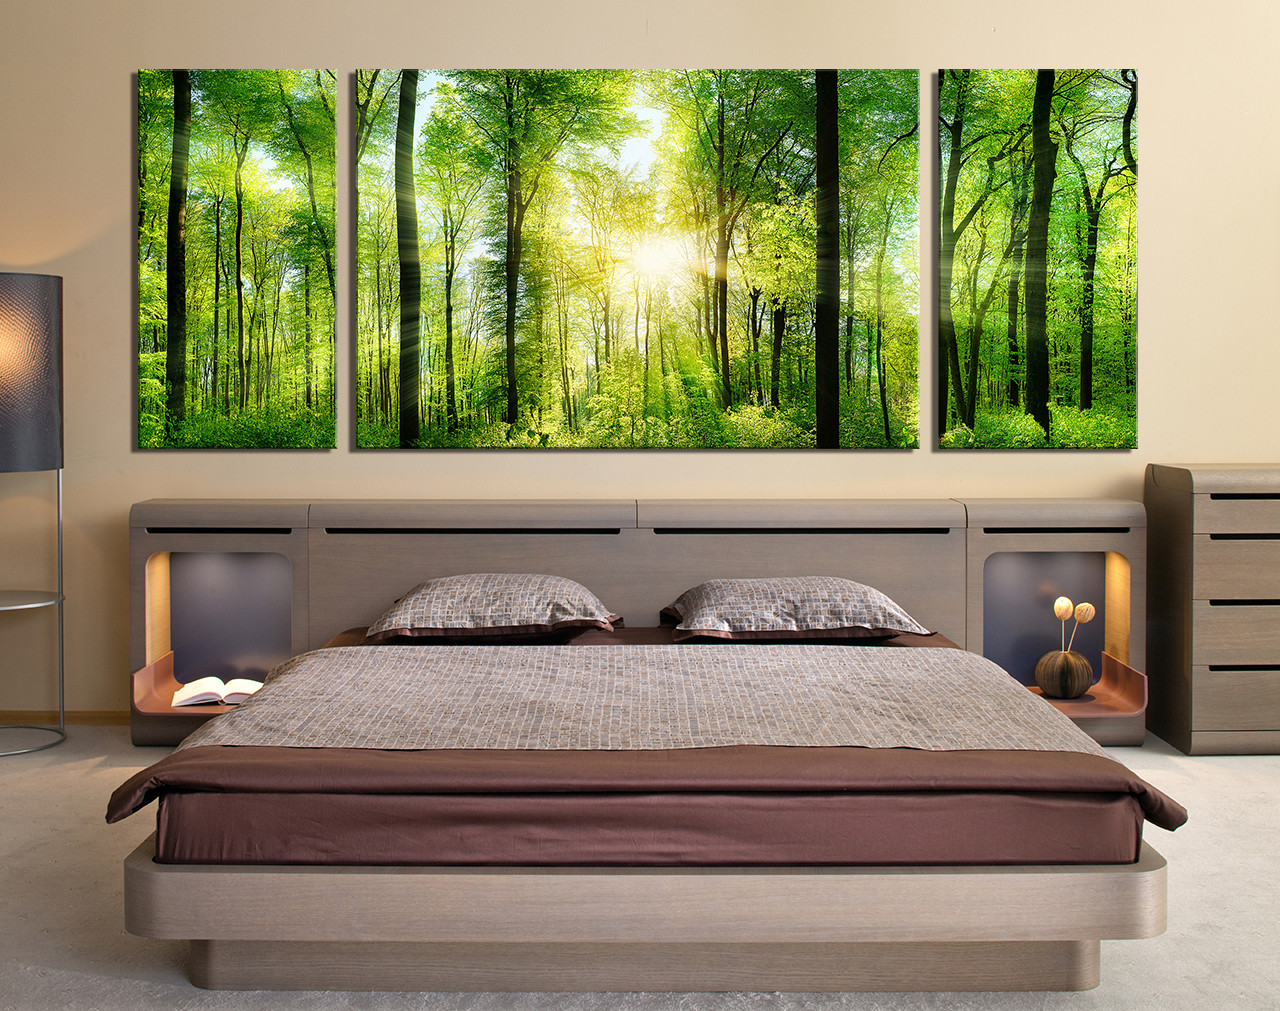 3 Piece Canvas Wall Art, Bedroom Large Canvas, Scenery Canvas Photography,  Green Multi